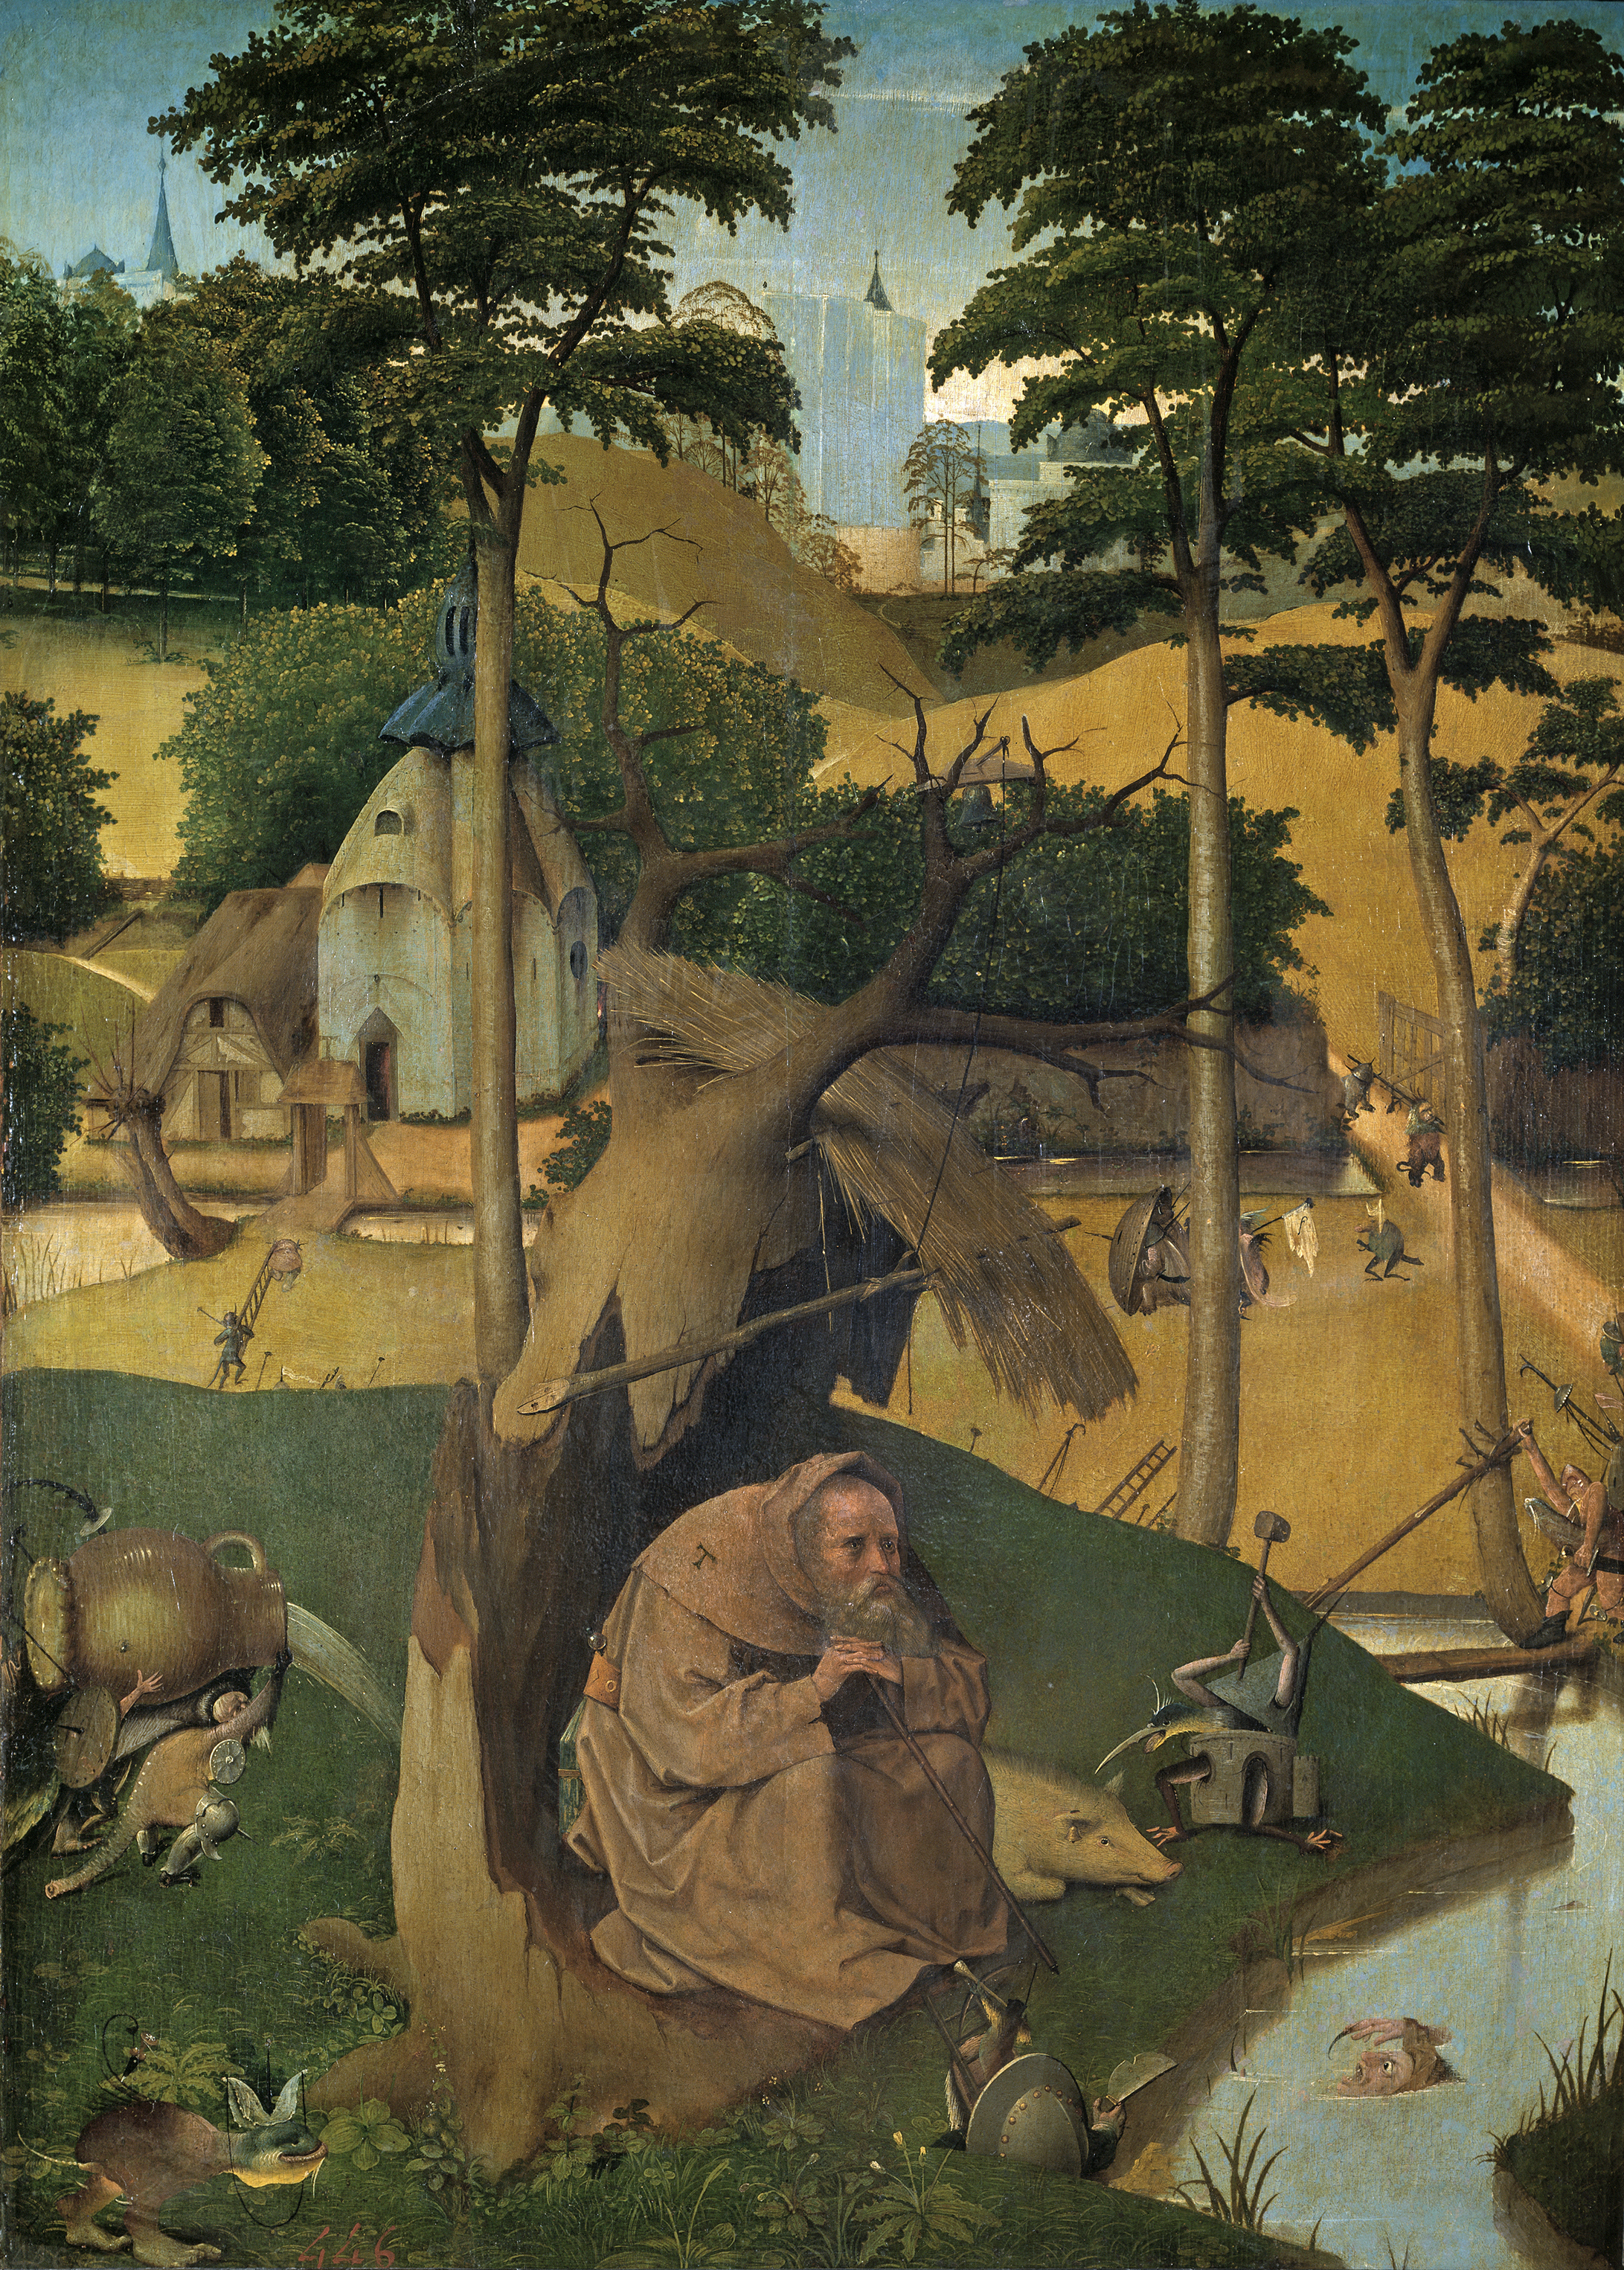 Hieronymus Bosch, or follower (c. 1450-1516),  The Temptation of St. Anthony  (c. 1500-1525), oil on panel, 73 x 52.5 cm. Museo del Prado, Madrid. Wikimedia Commons.